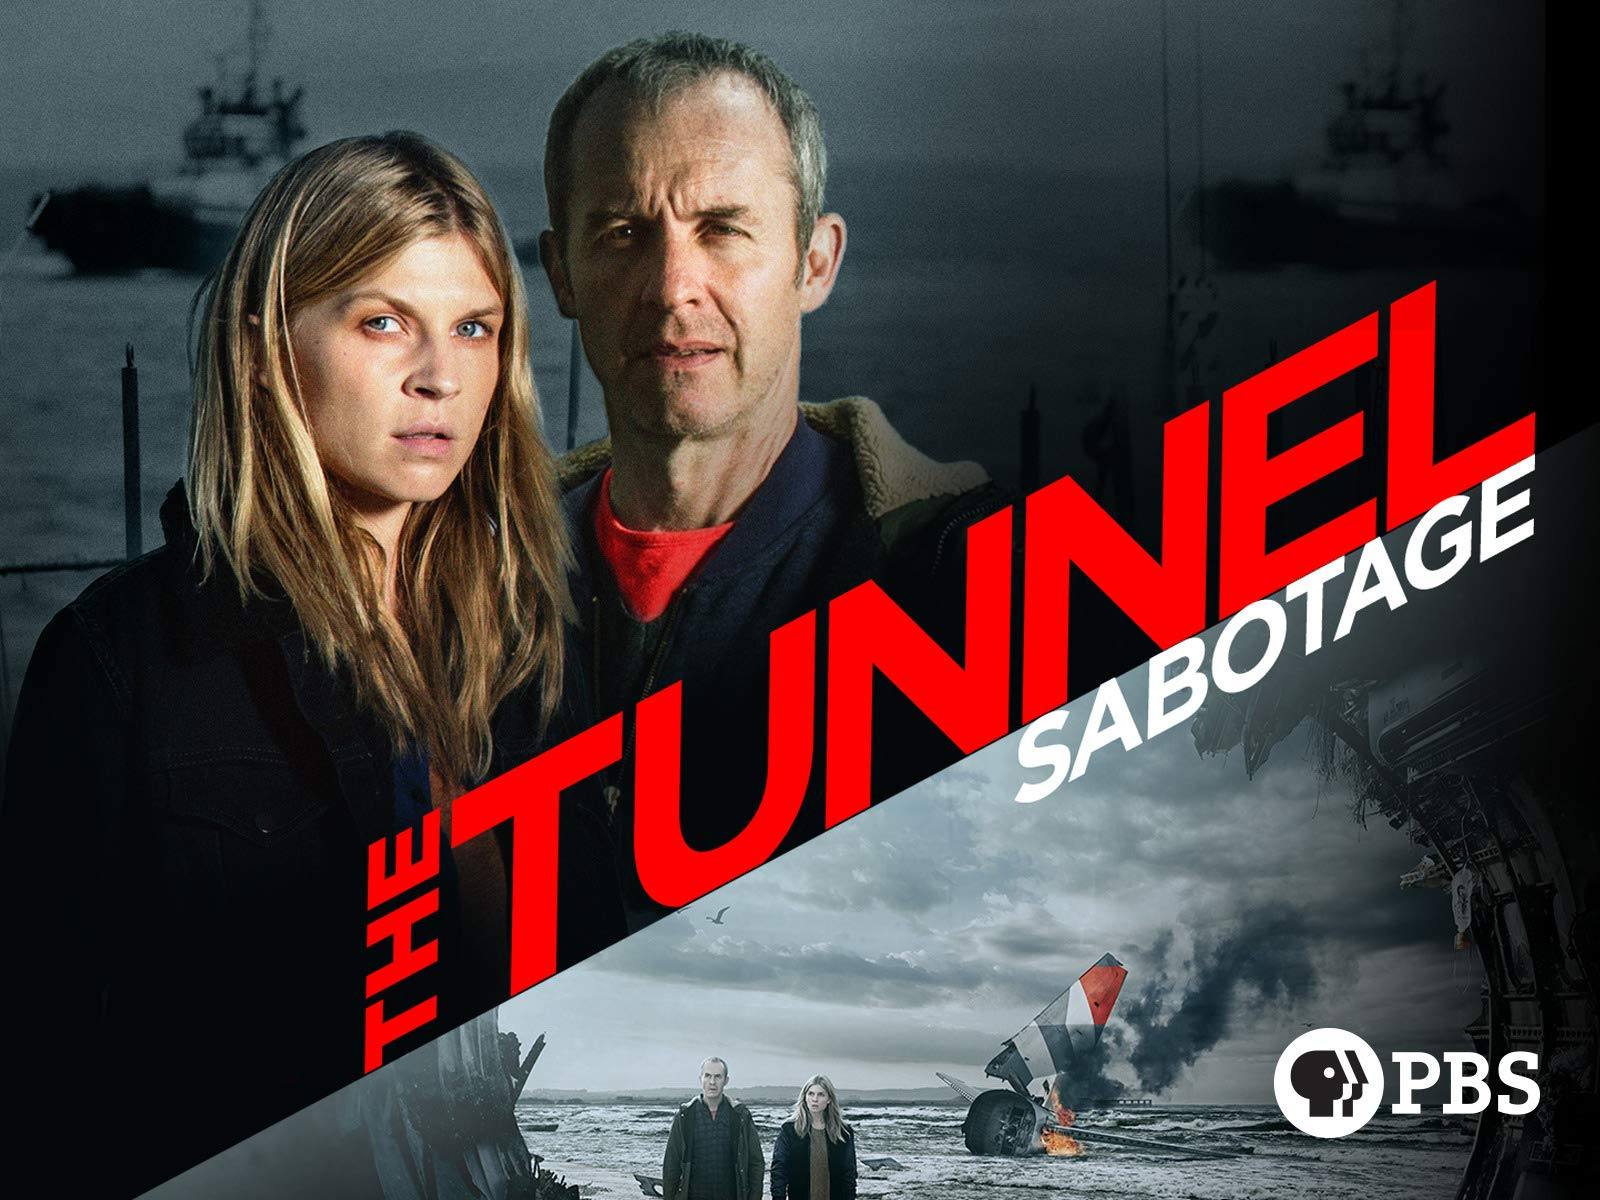 sabotage movie putlocker